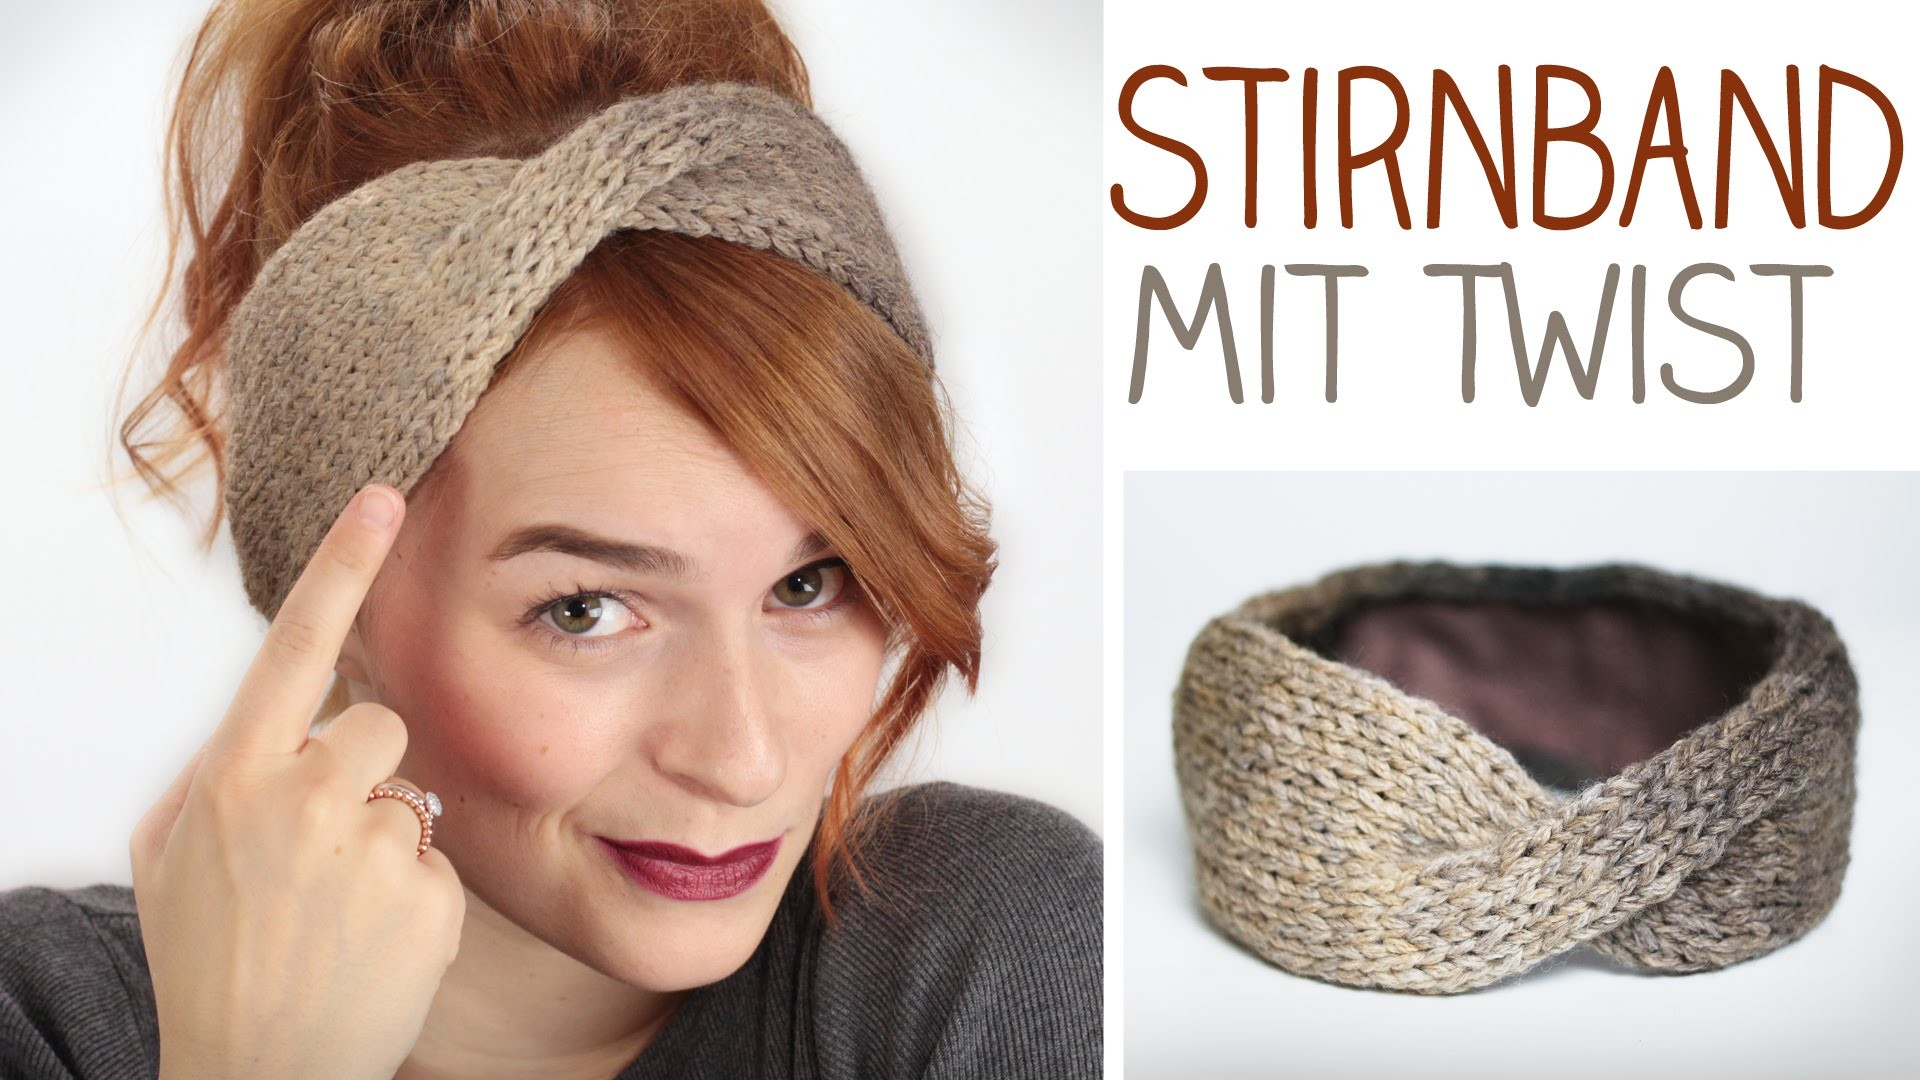 diy stirnband mit twist stricken f r anf nger u modefreaks gef ttert im winter. Black Bedroom Furniture Sets. Home Design Ideas